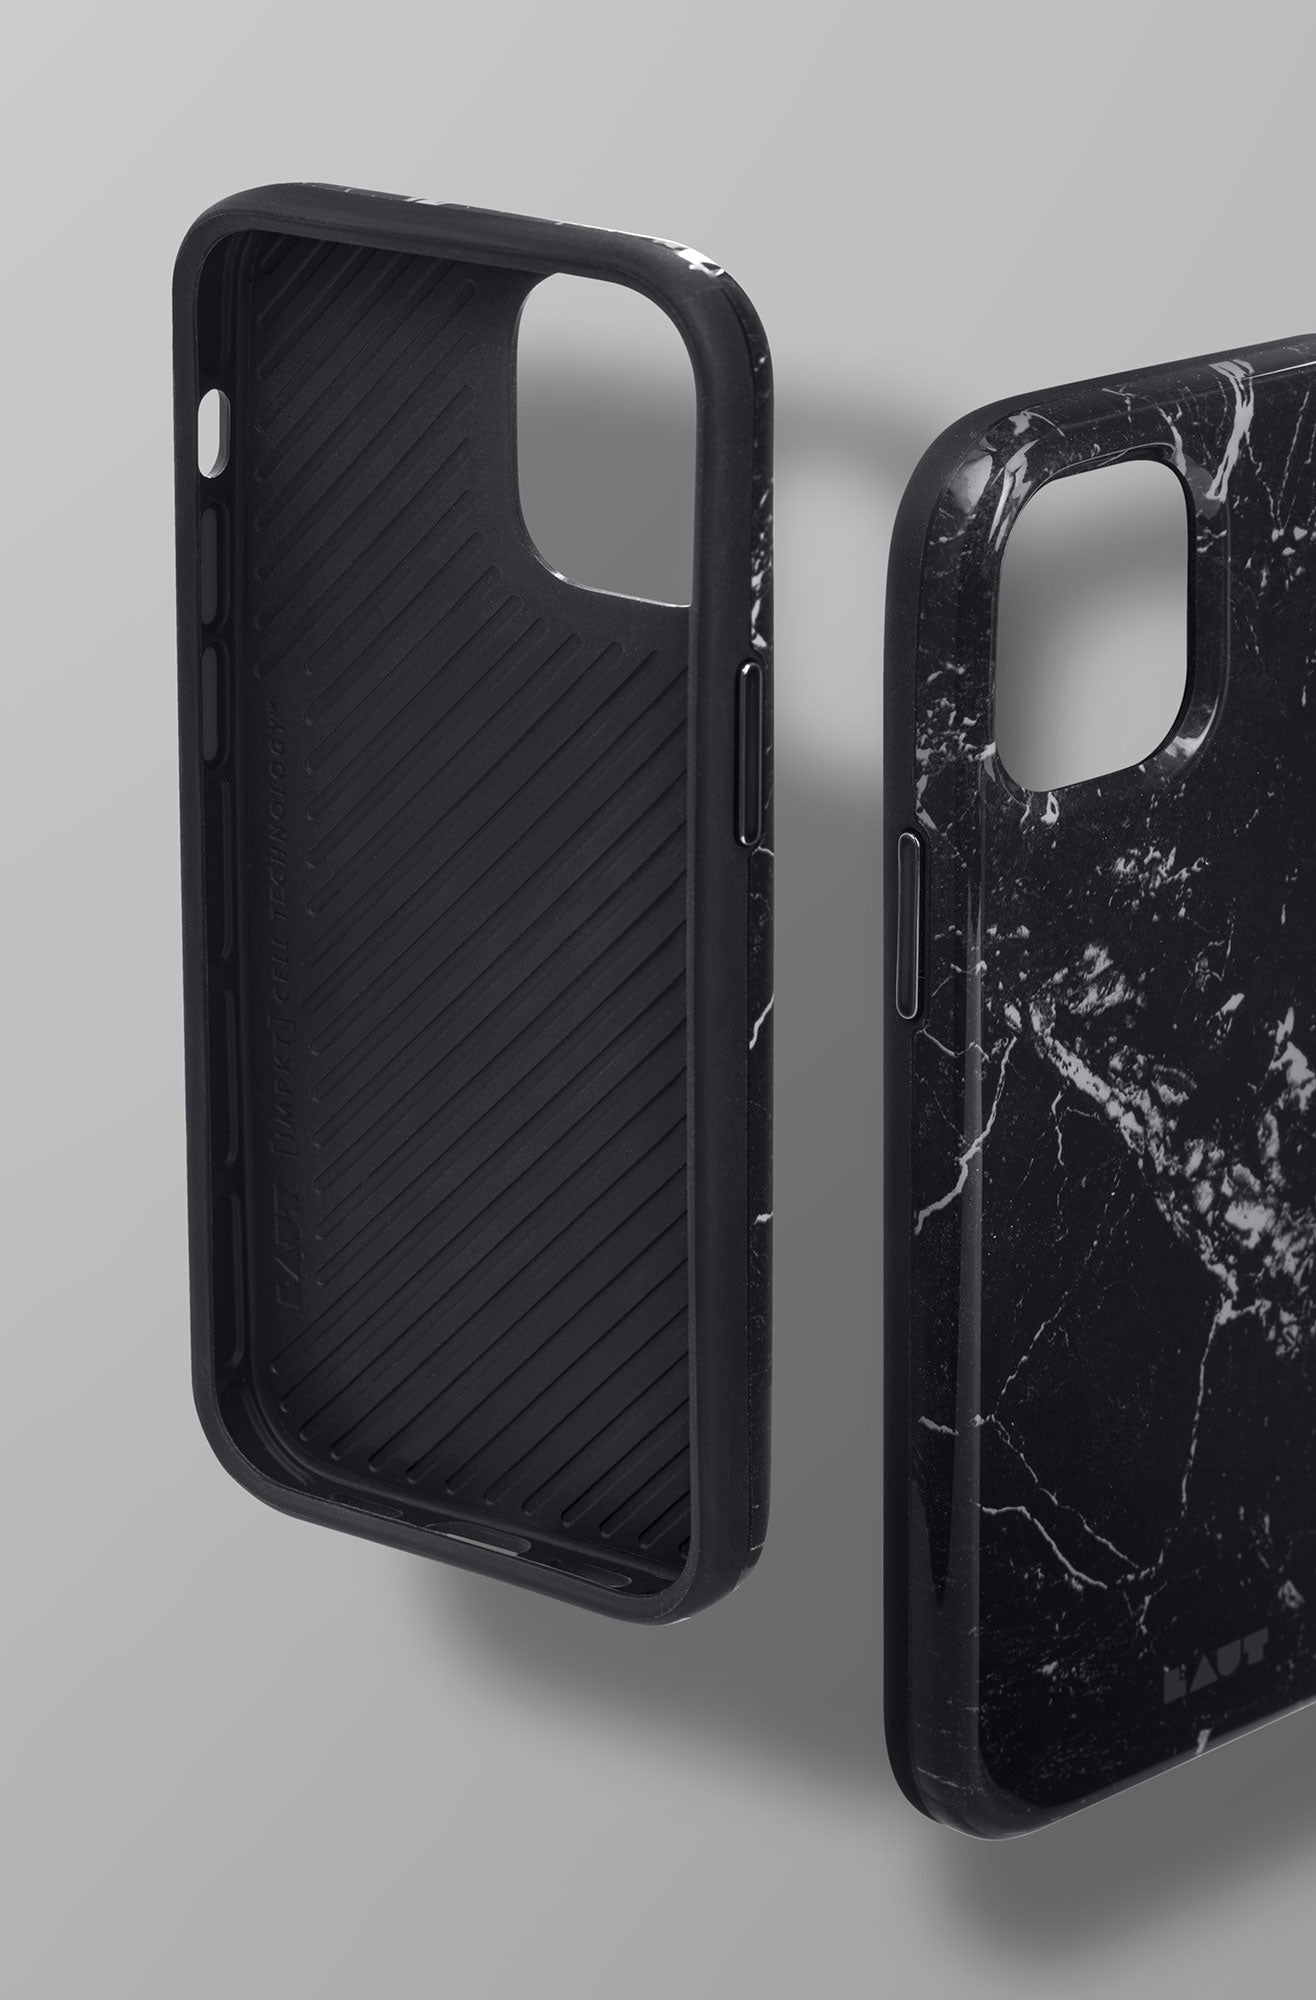 LAUT - HUEX ELEMENTS case for iPhone 12 series